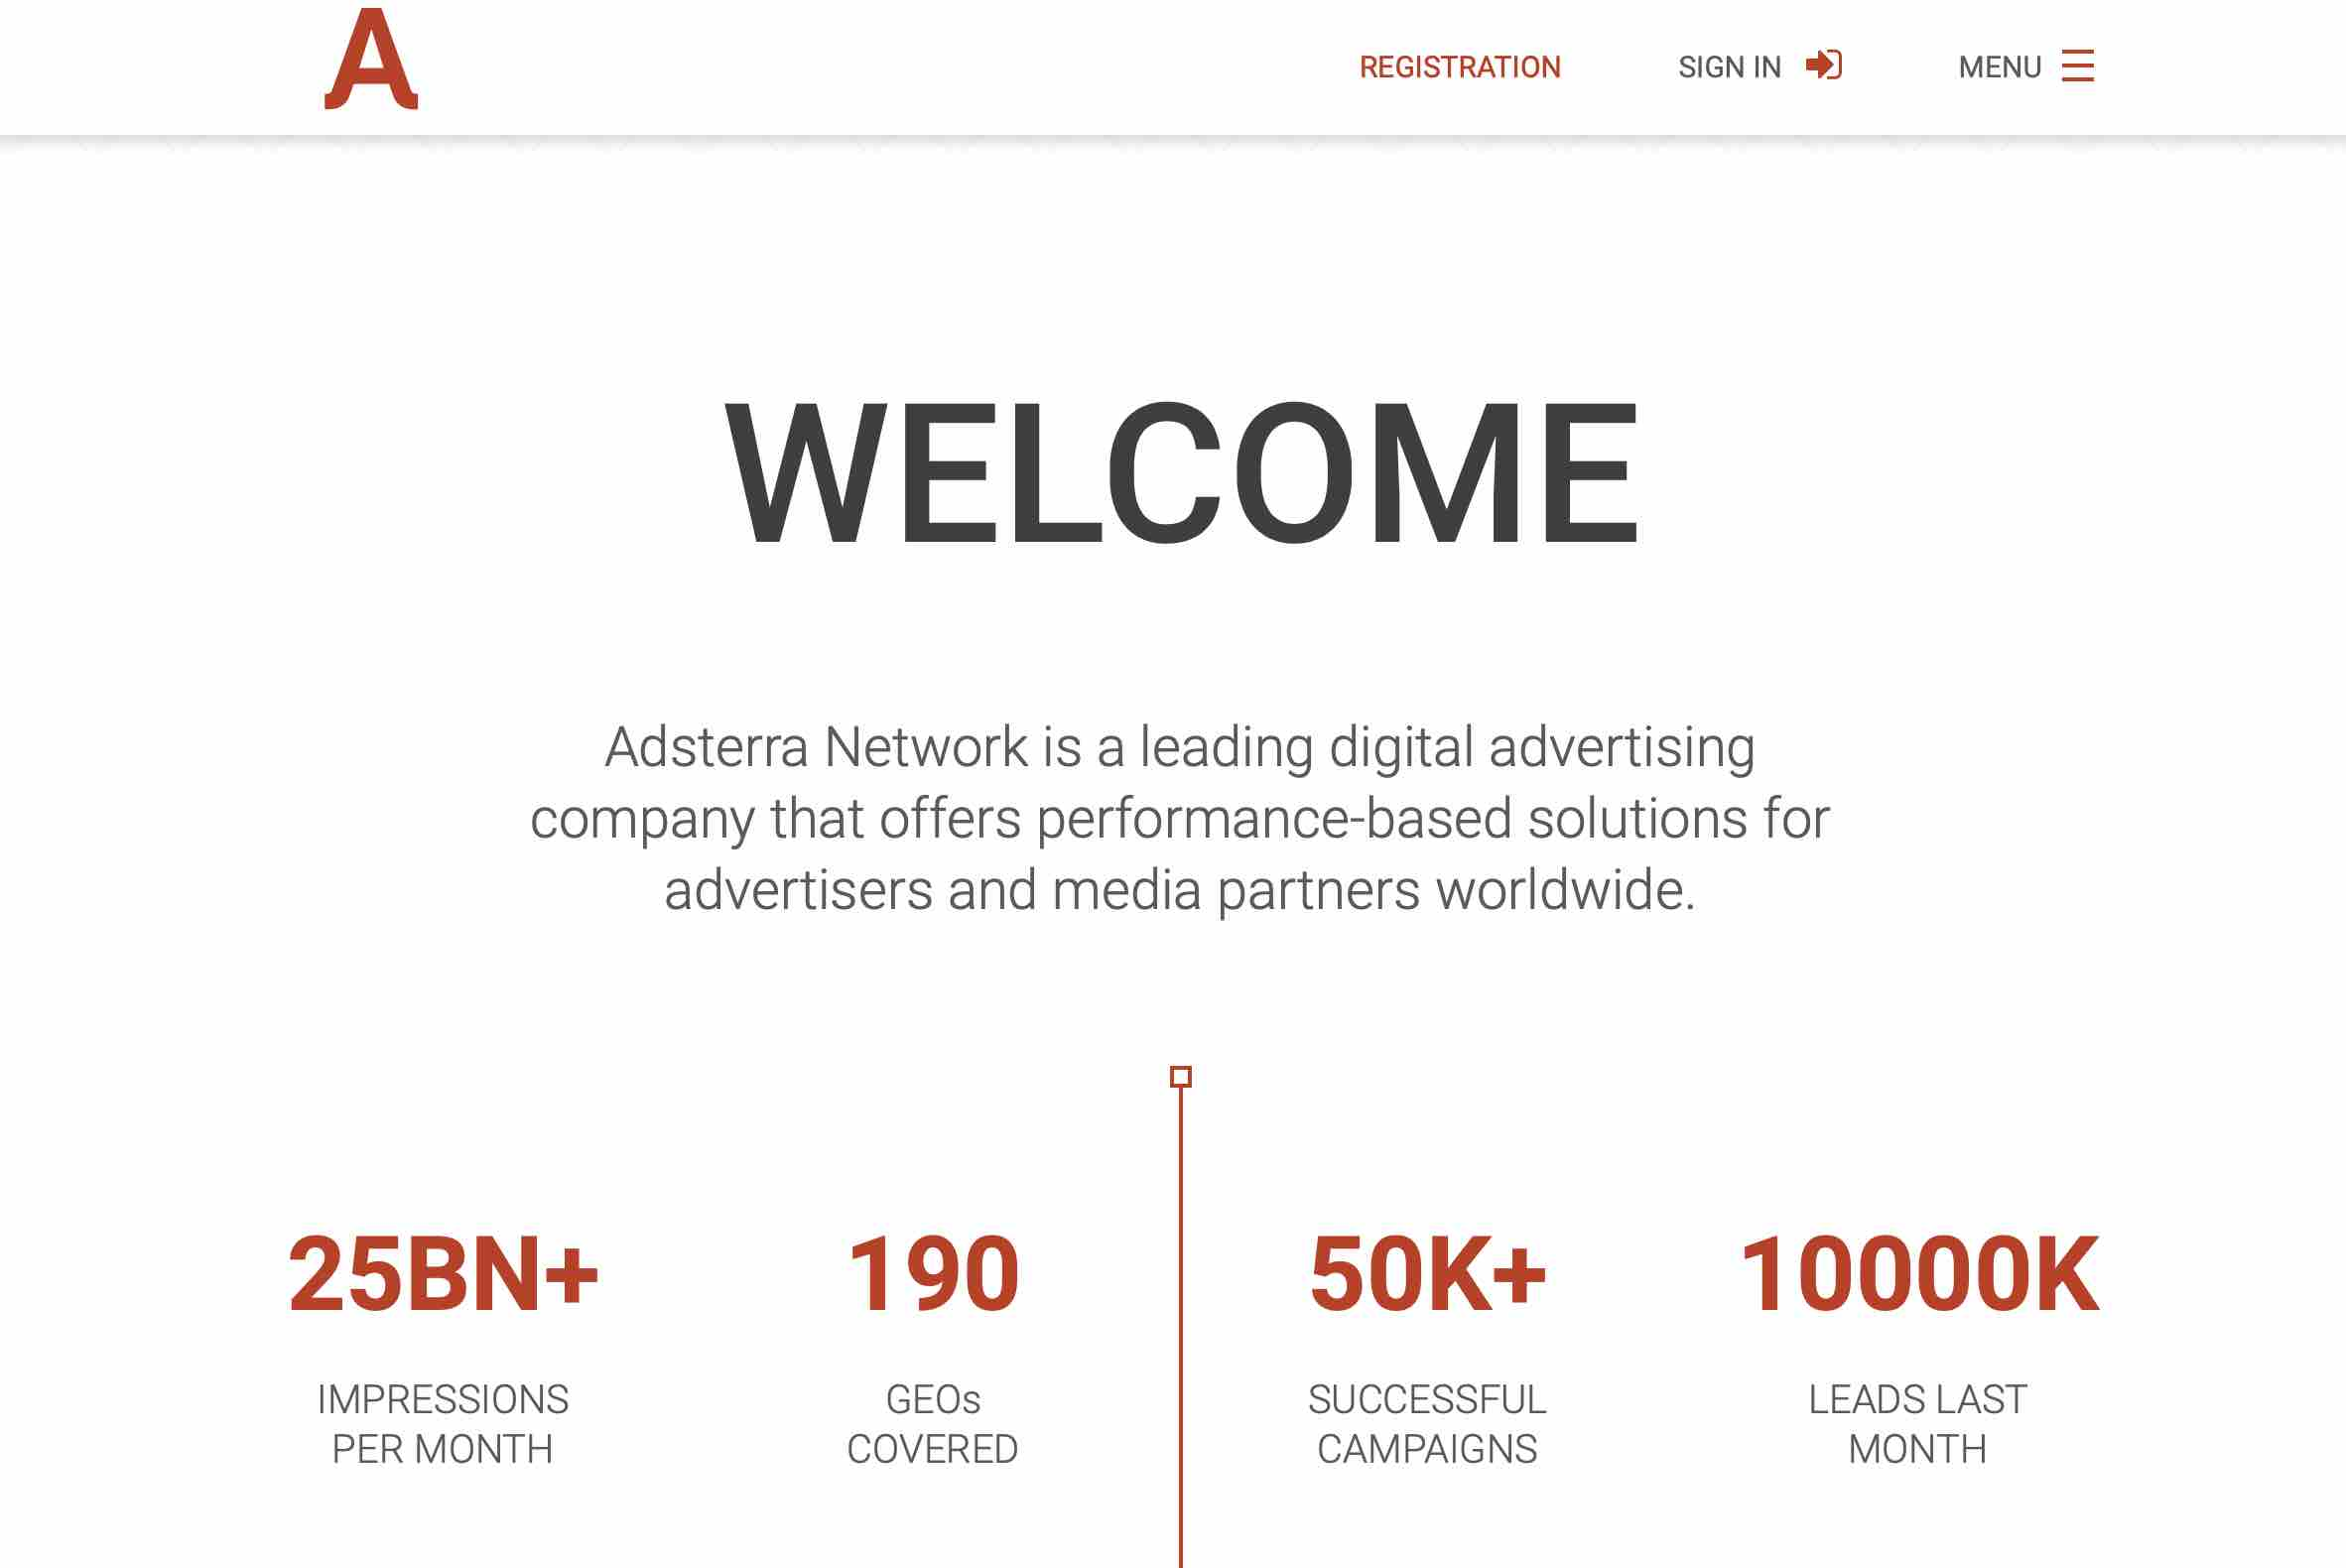 offers performance-based solutions for advertisers and media partners worldwide